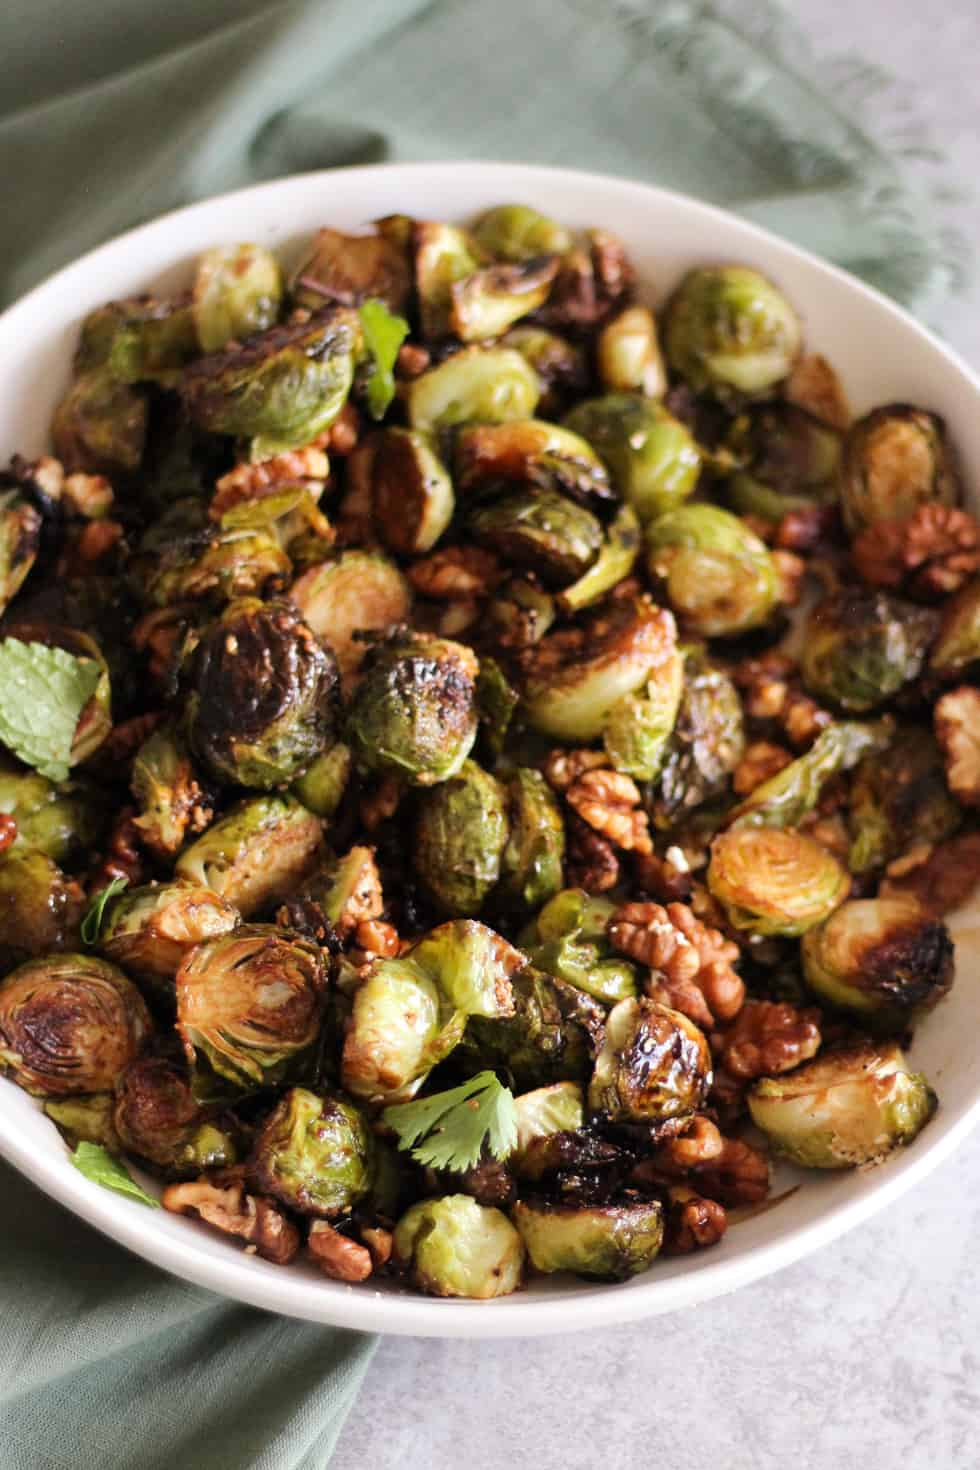 Crispy roasted Brussels sprouts in white dish with green napkin.